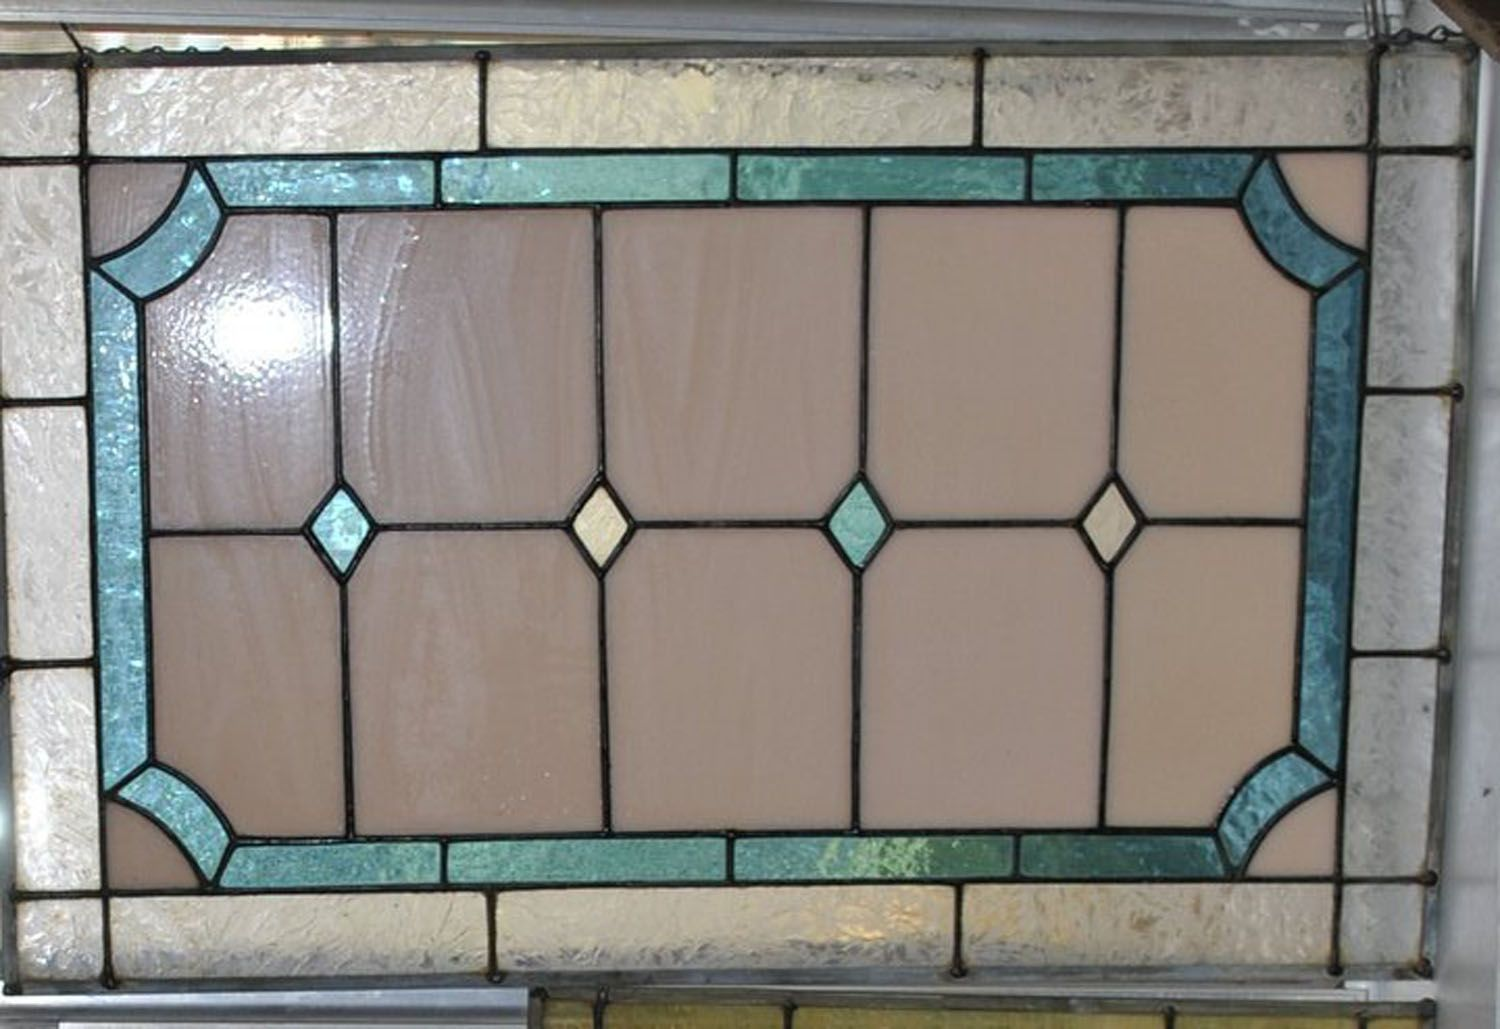 Stained Glass Art Deco Panel 12 X 24 Inches Valued At 55 Stained Glass Art Stained Glass Glass Art